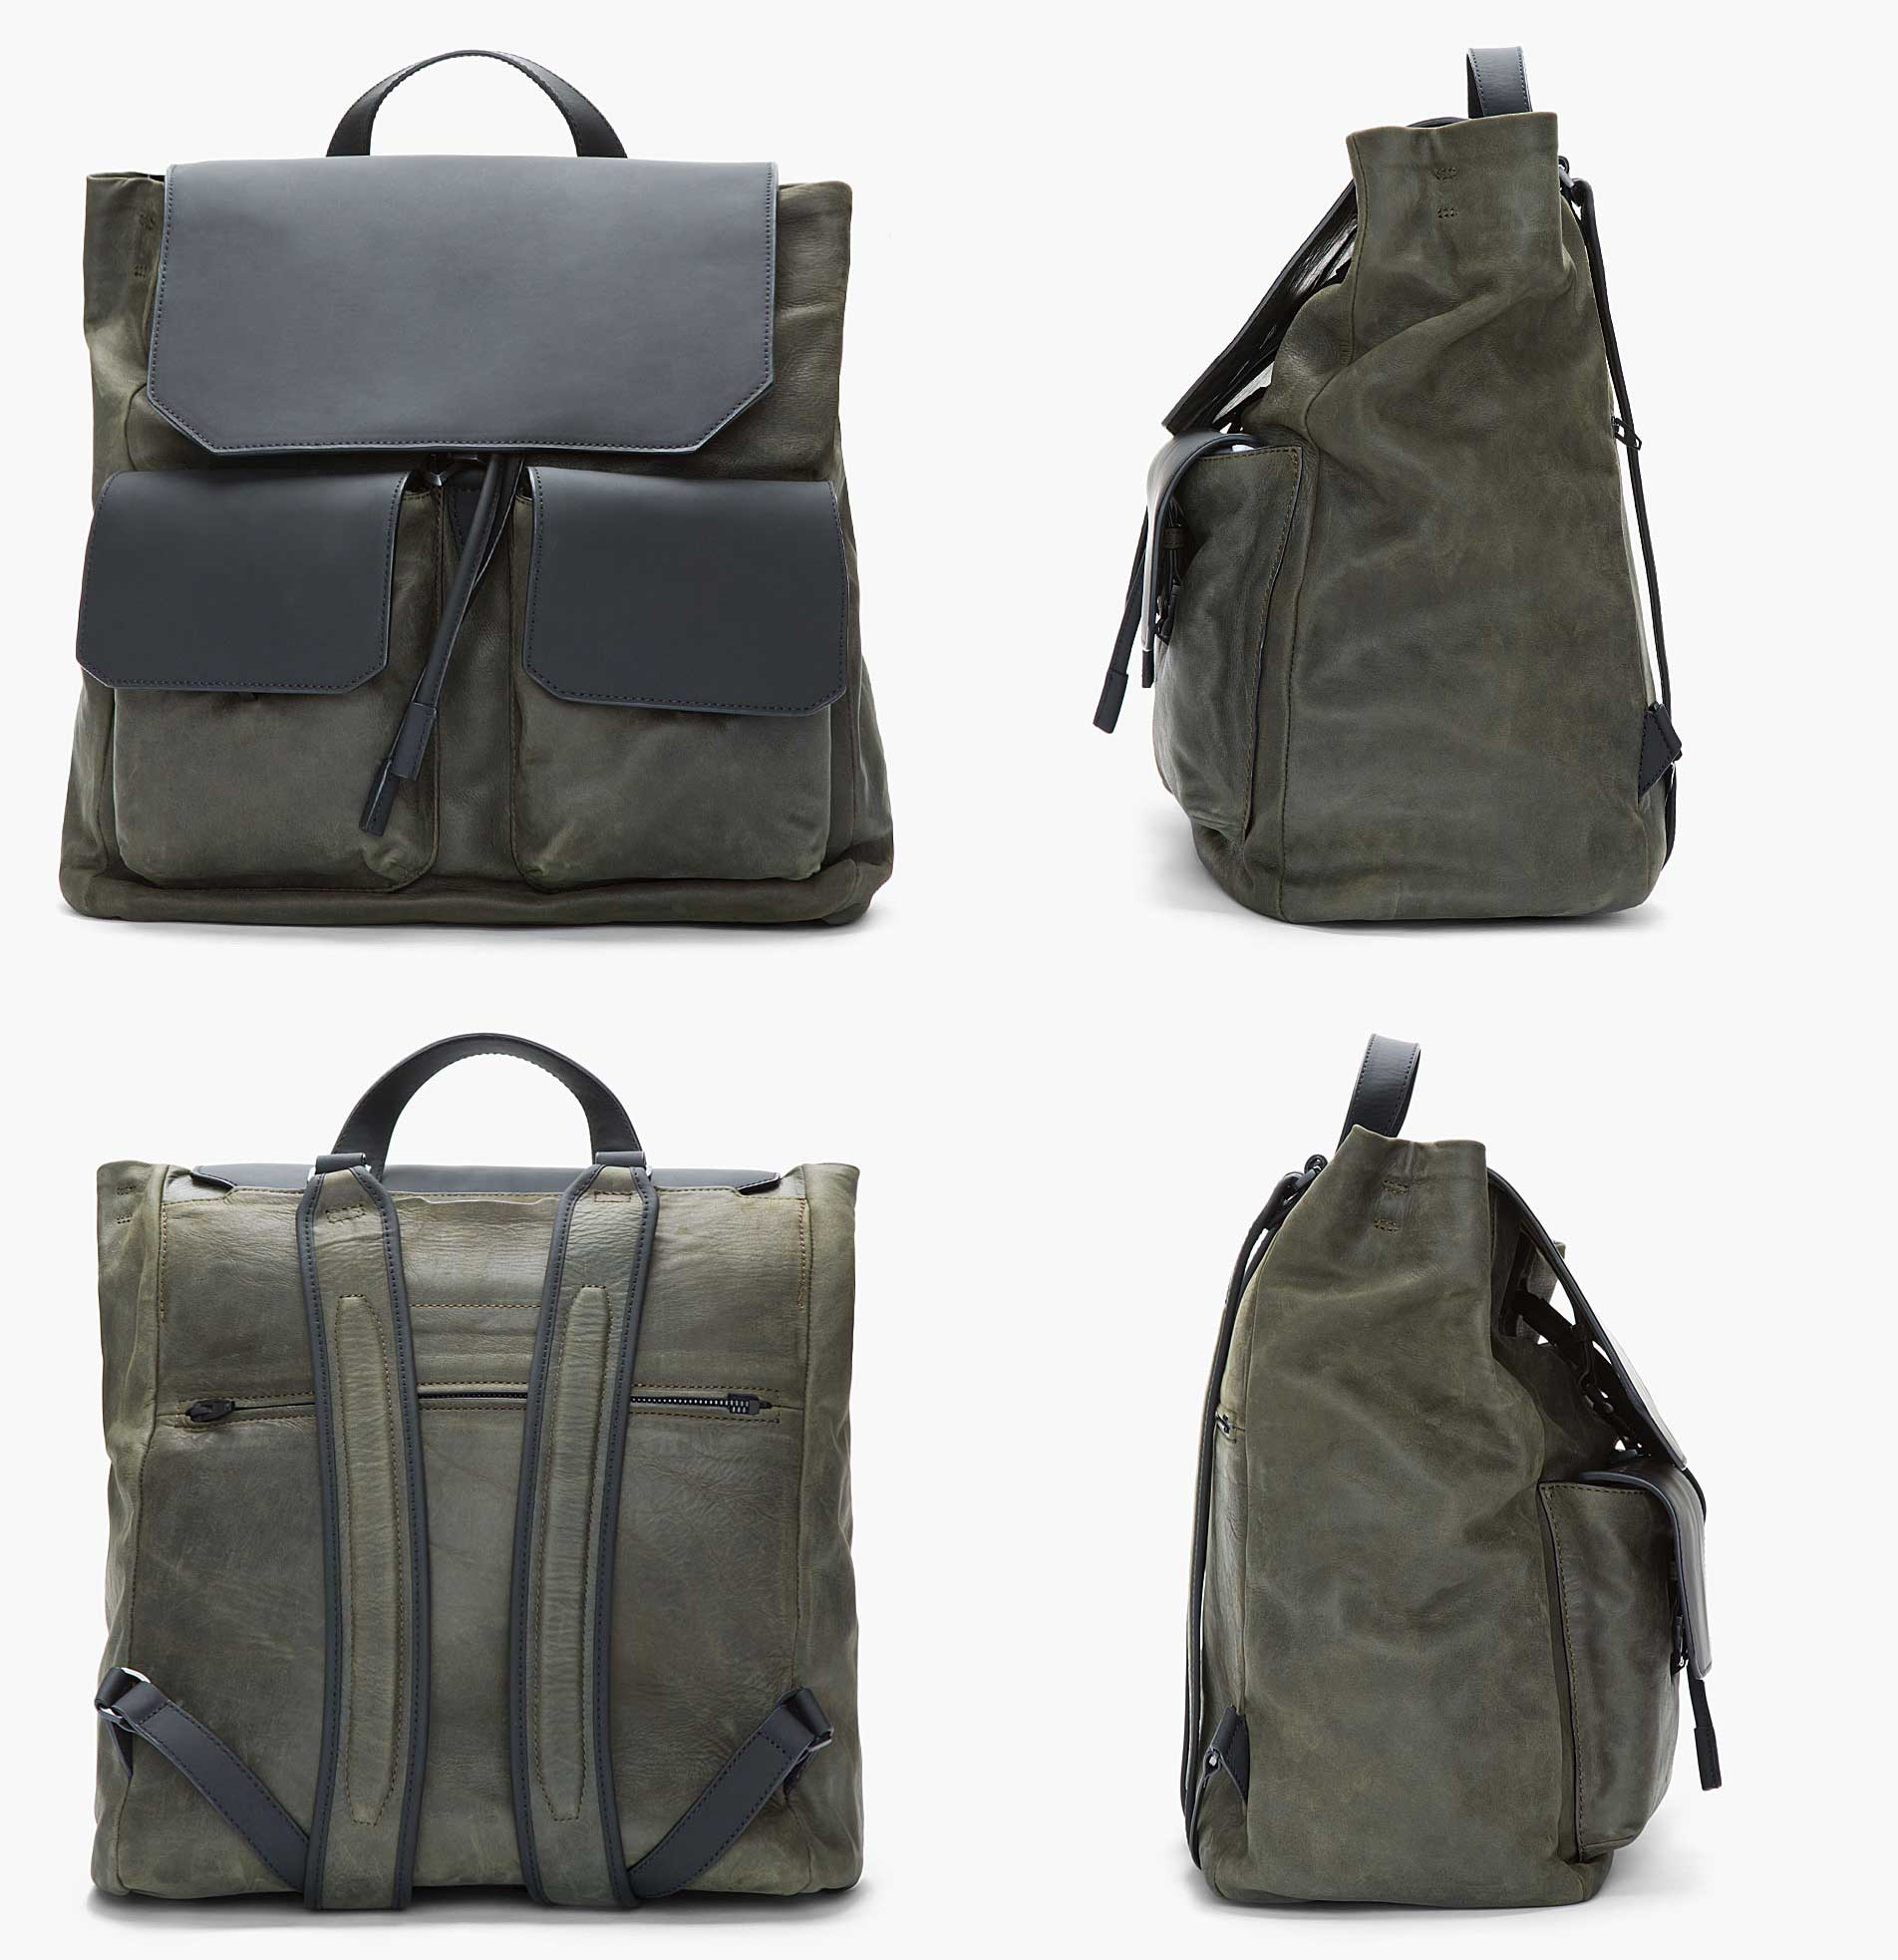 Alexander-Wang-Leather-Rucksack